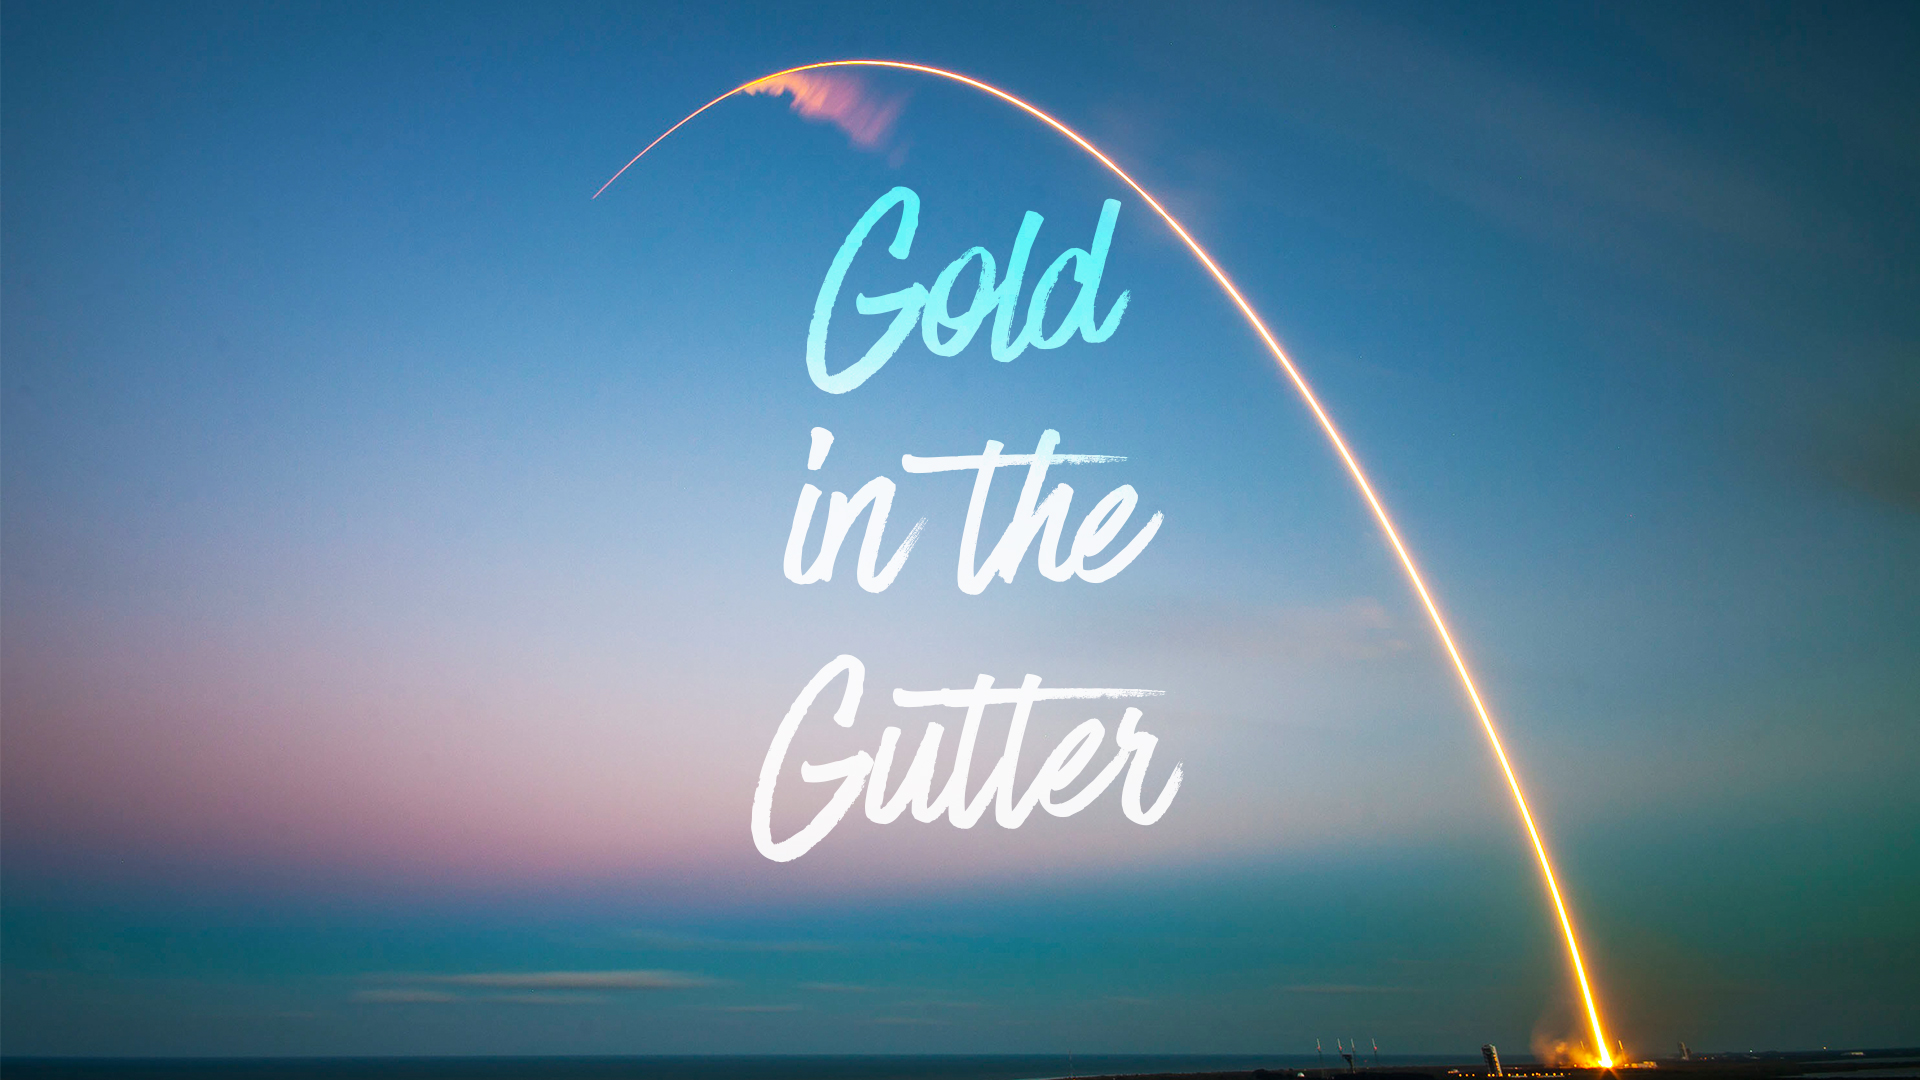 Gold In The Gutter - Graphic.jpg